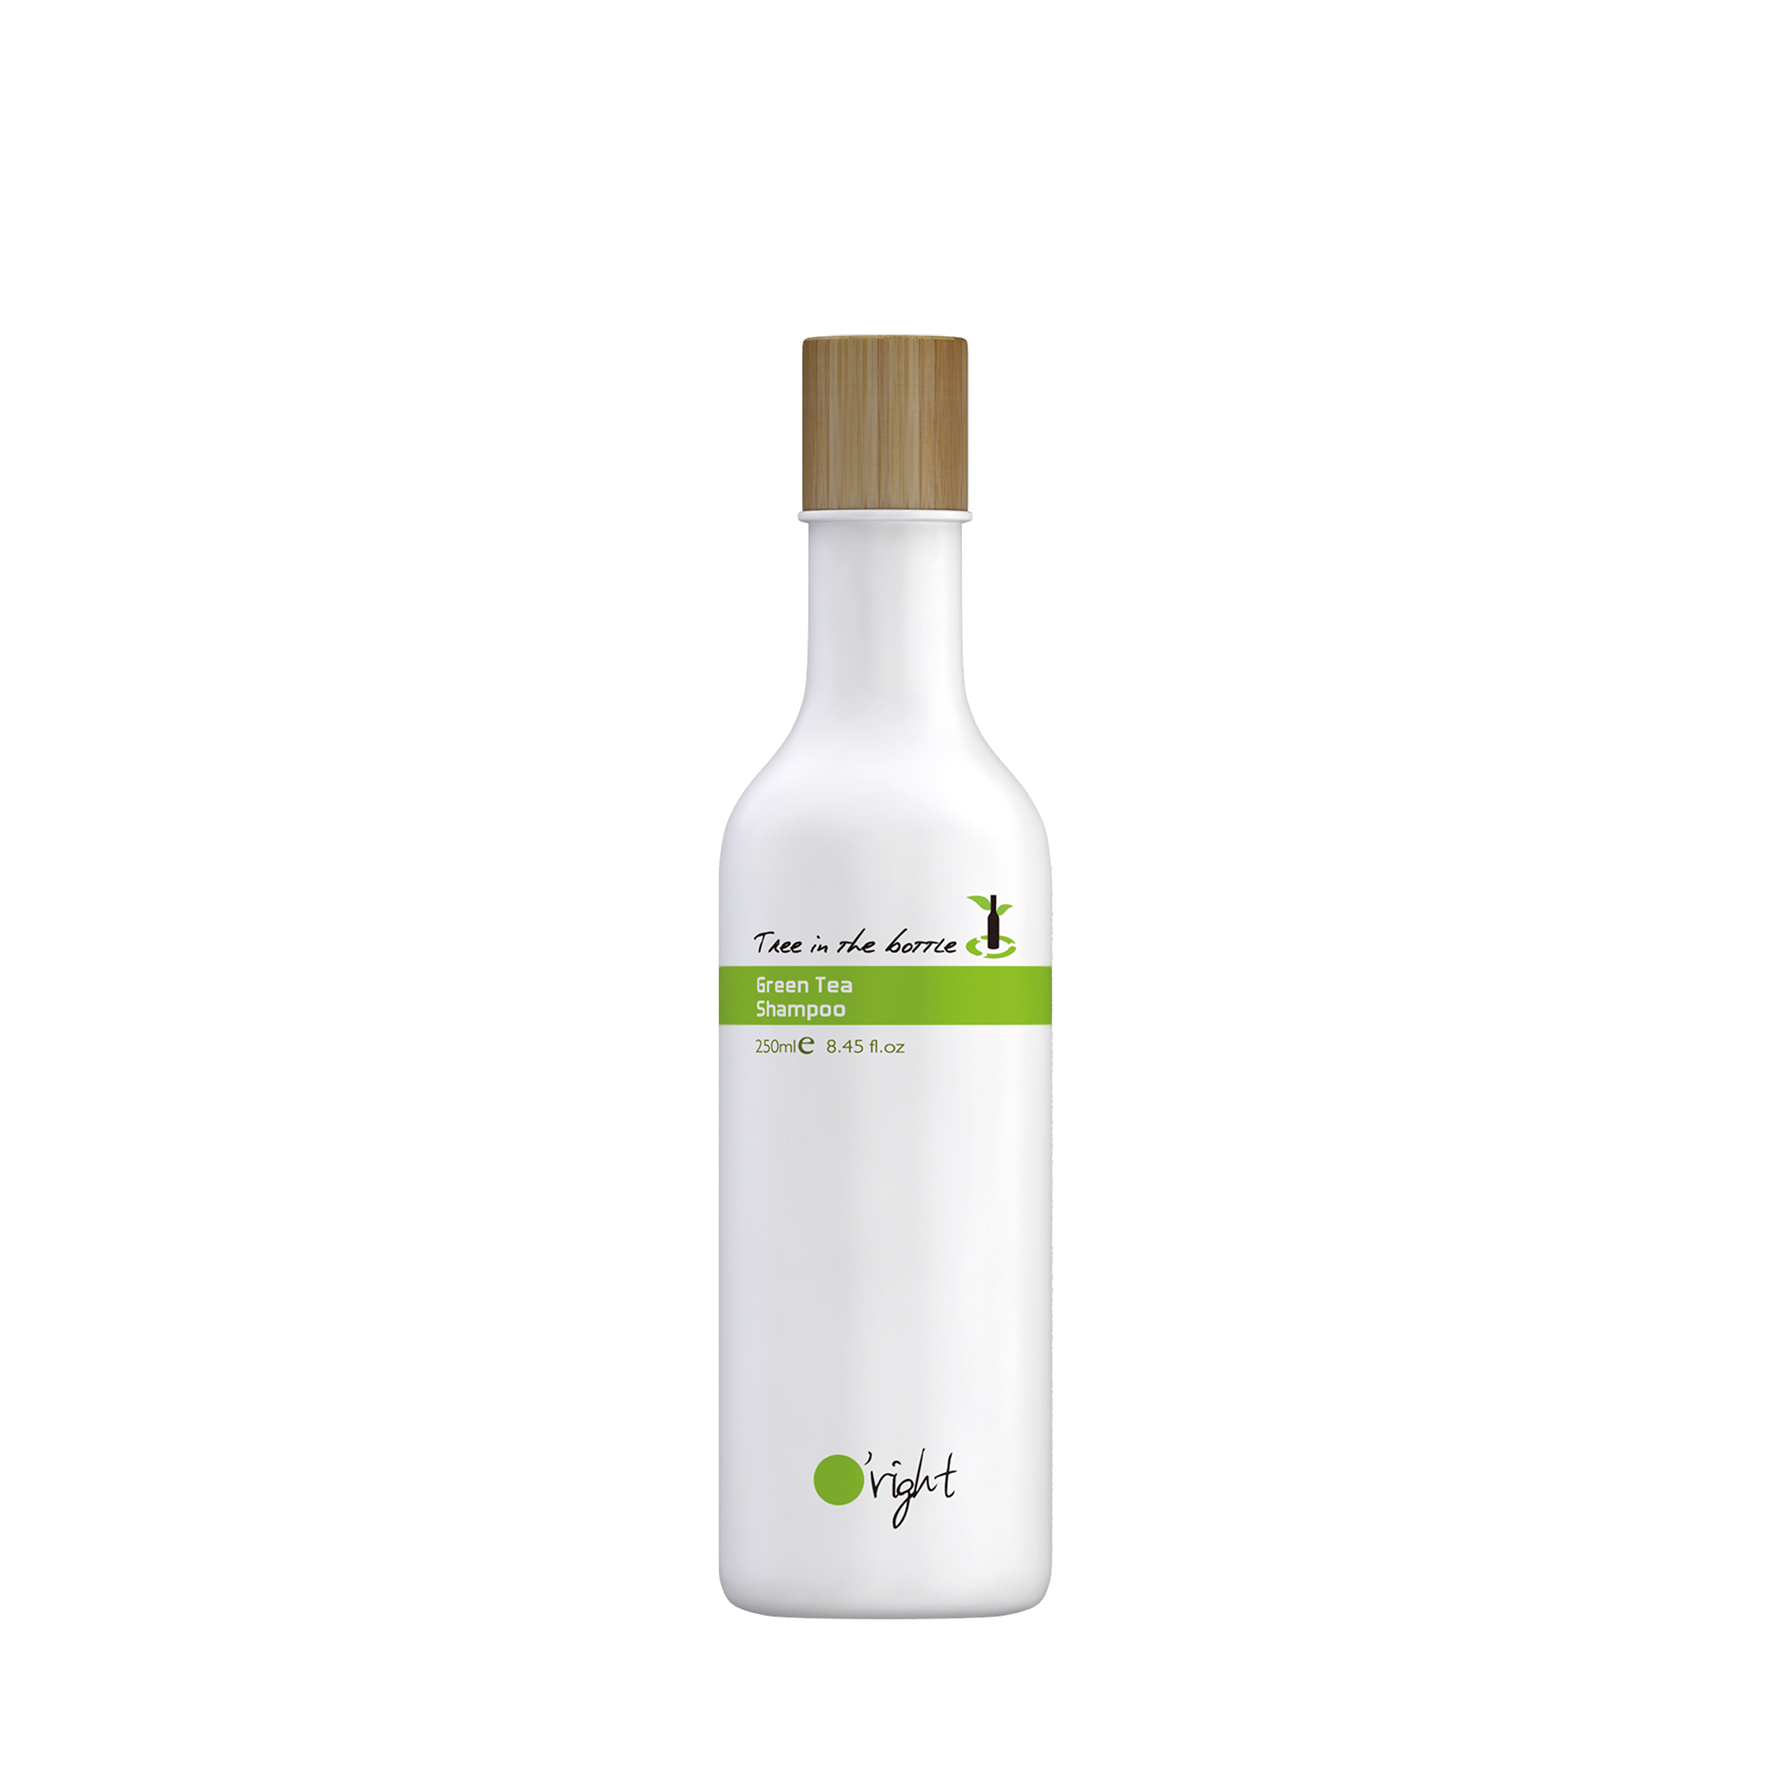 GREEN TEA Shampoo 250ml